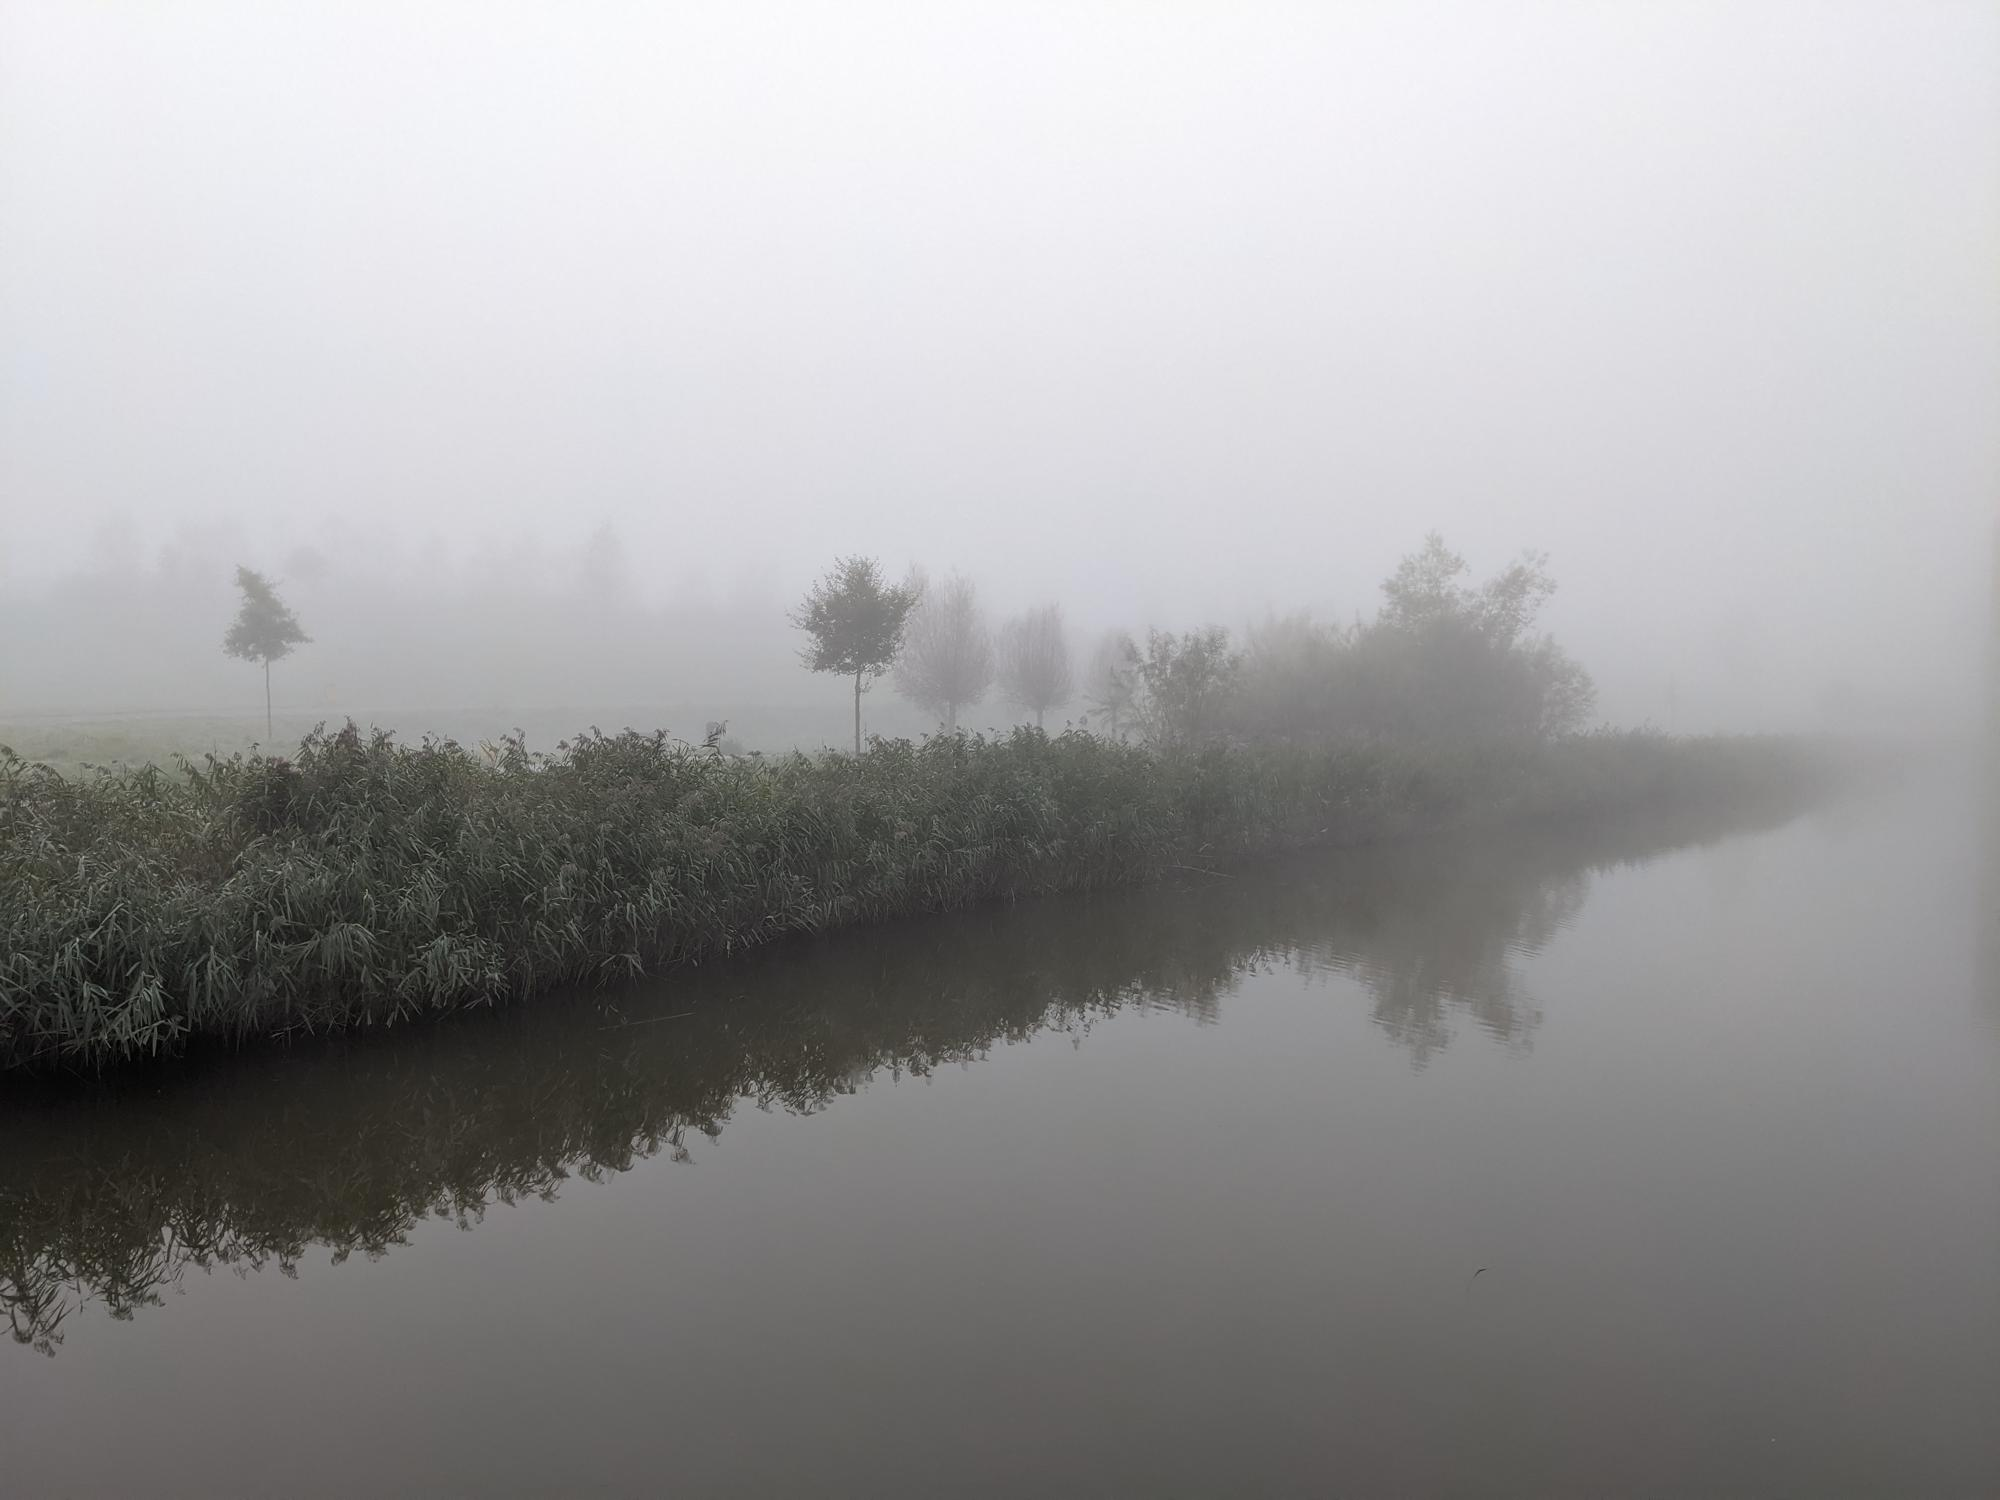 Fog over water with birds and reeds